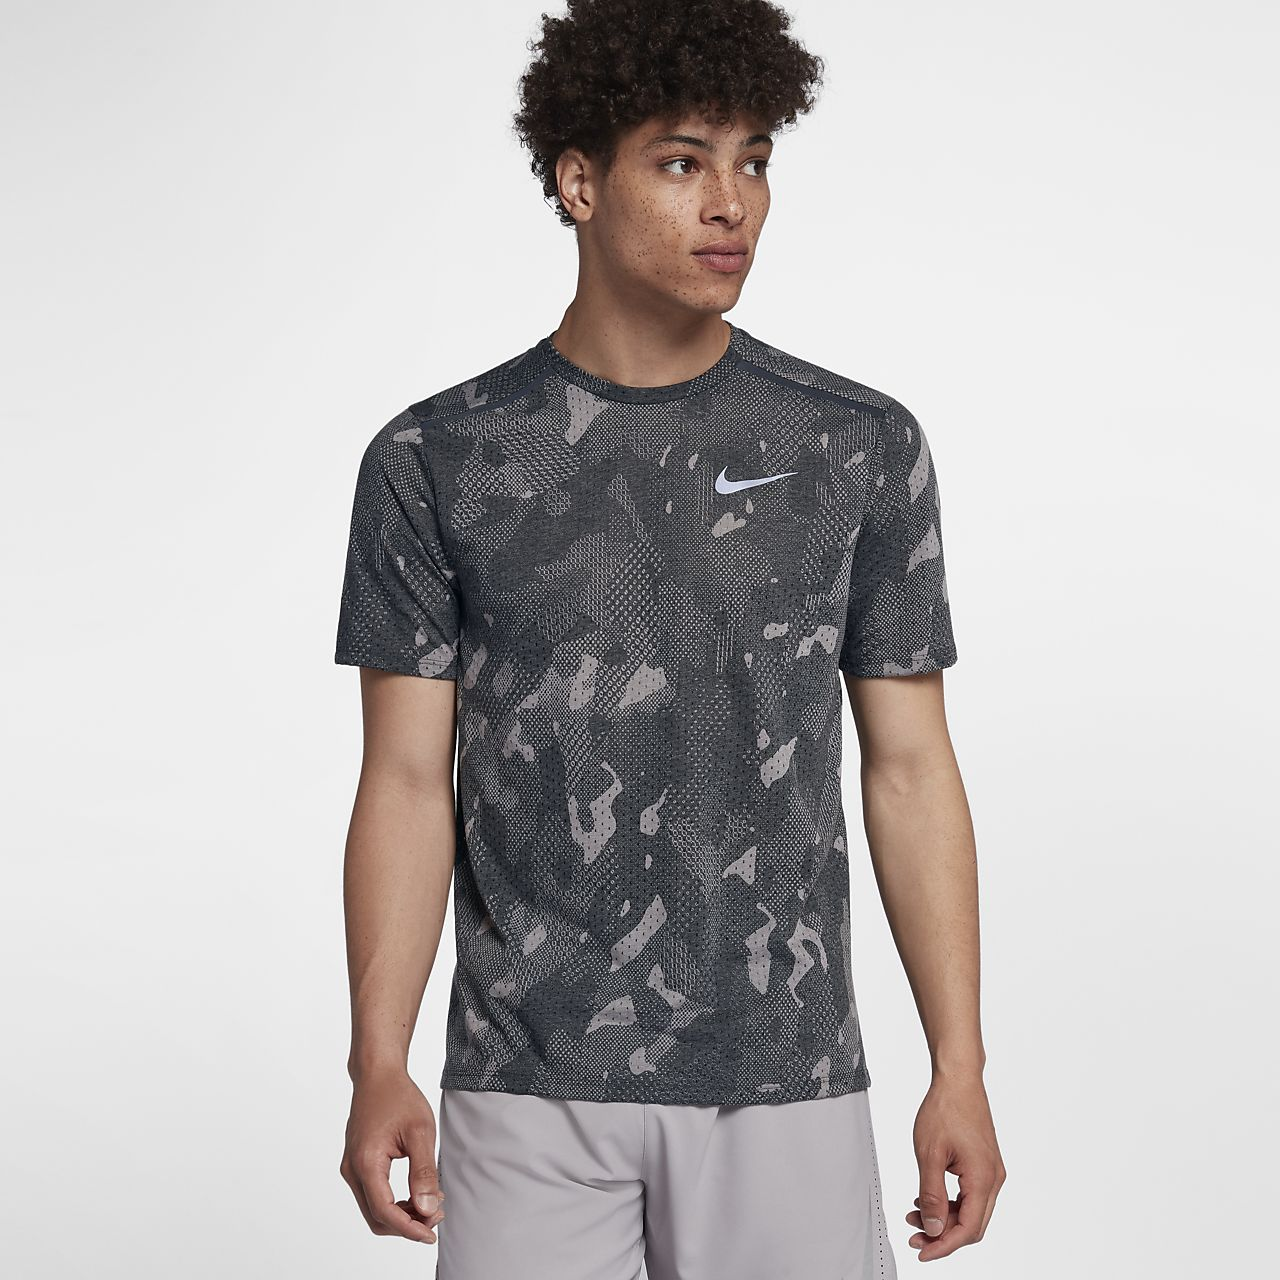 ddc15504 Nike Rise 365 Men's Short-Sleeve Running Top. Nike.com IN